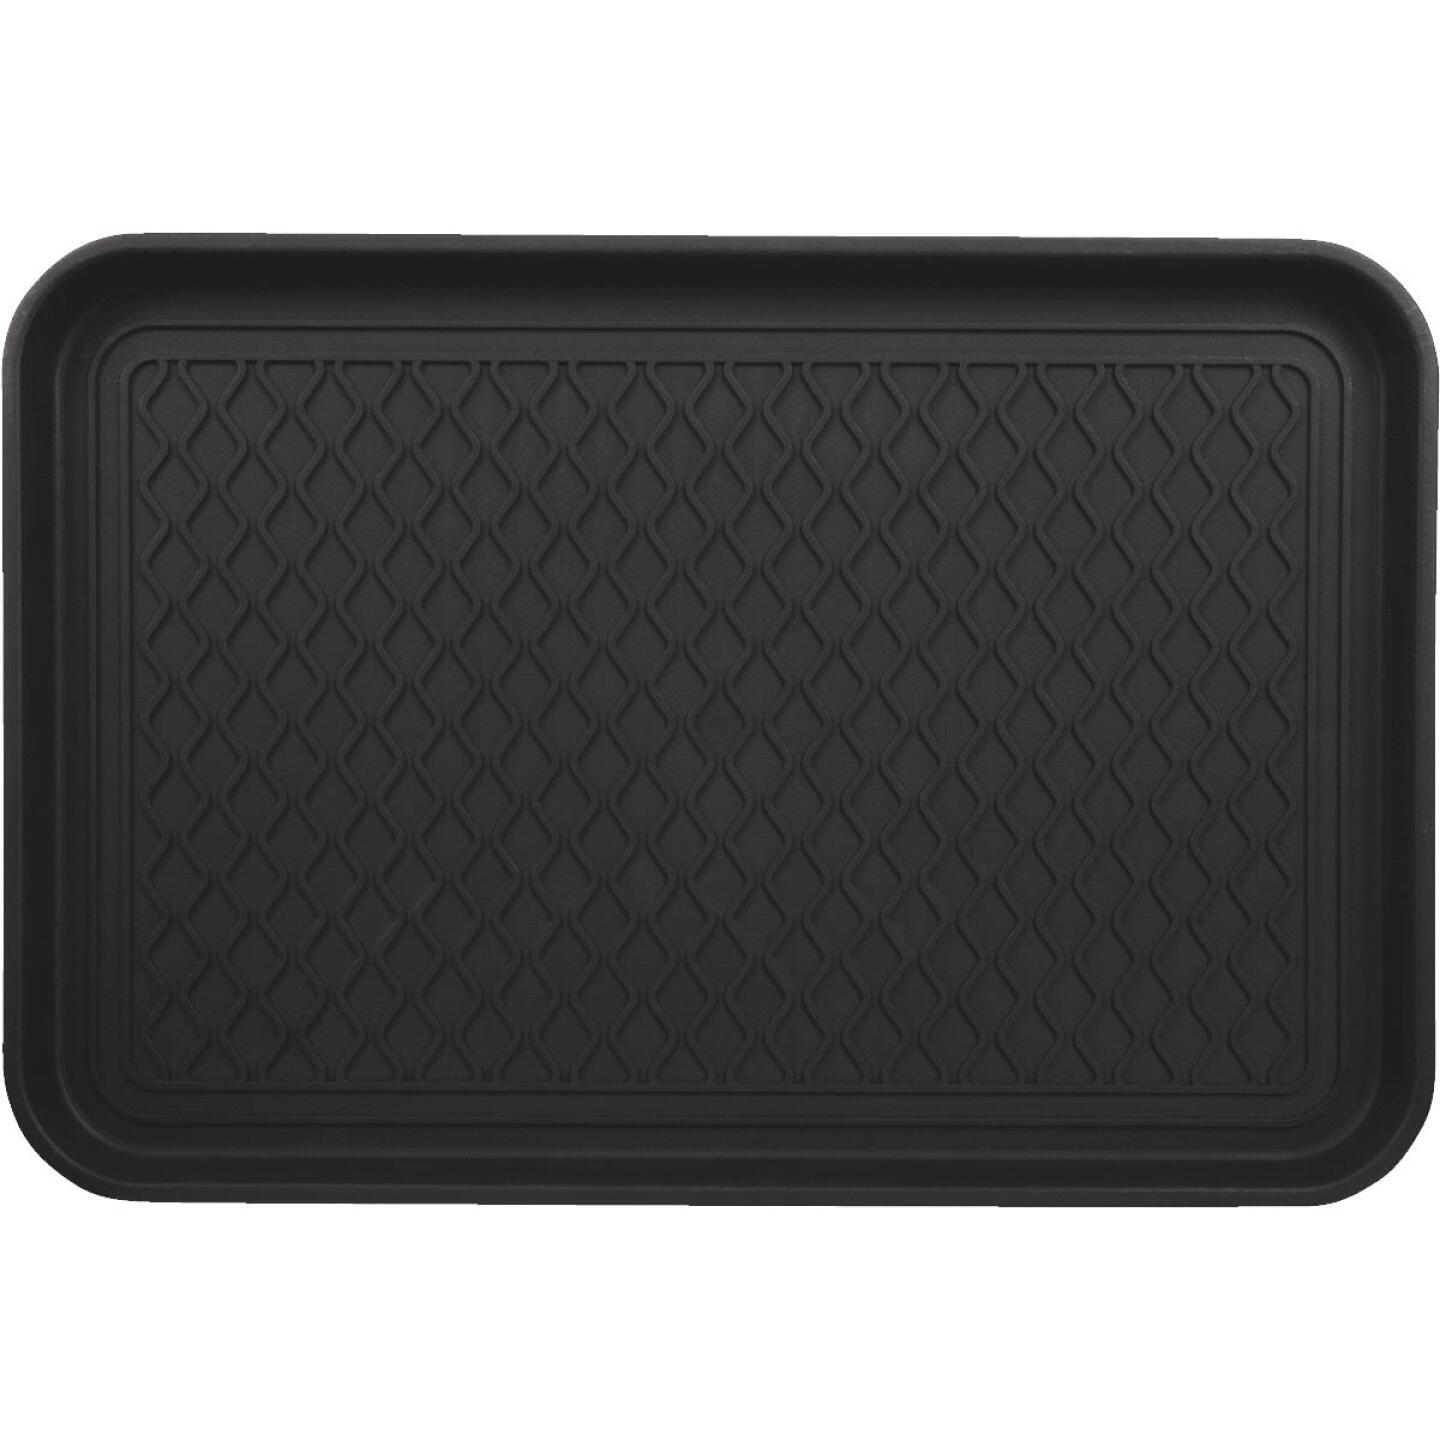 15.75 In. x 23.5 In. Black Recycled Plastic Rectangular Boot Tray Image 3